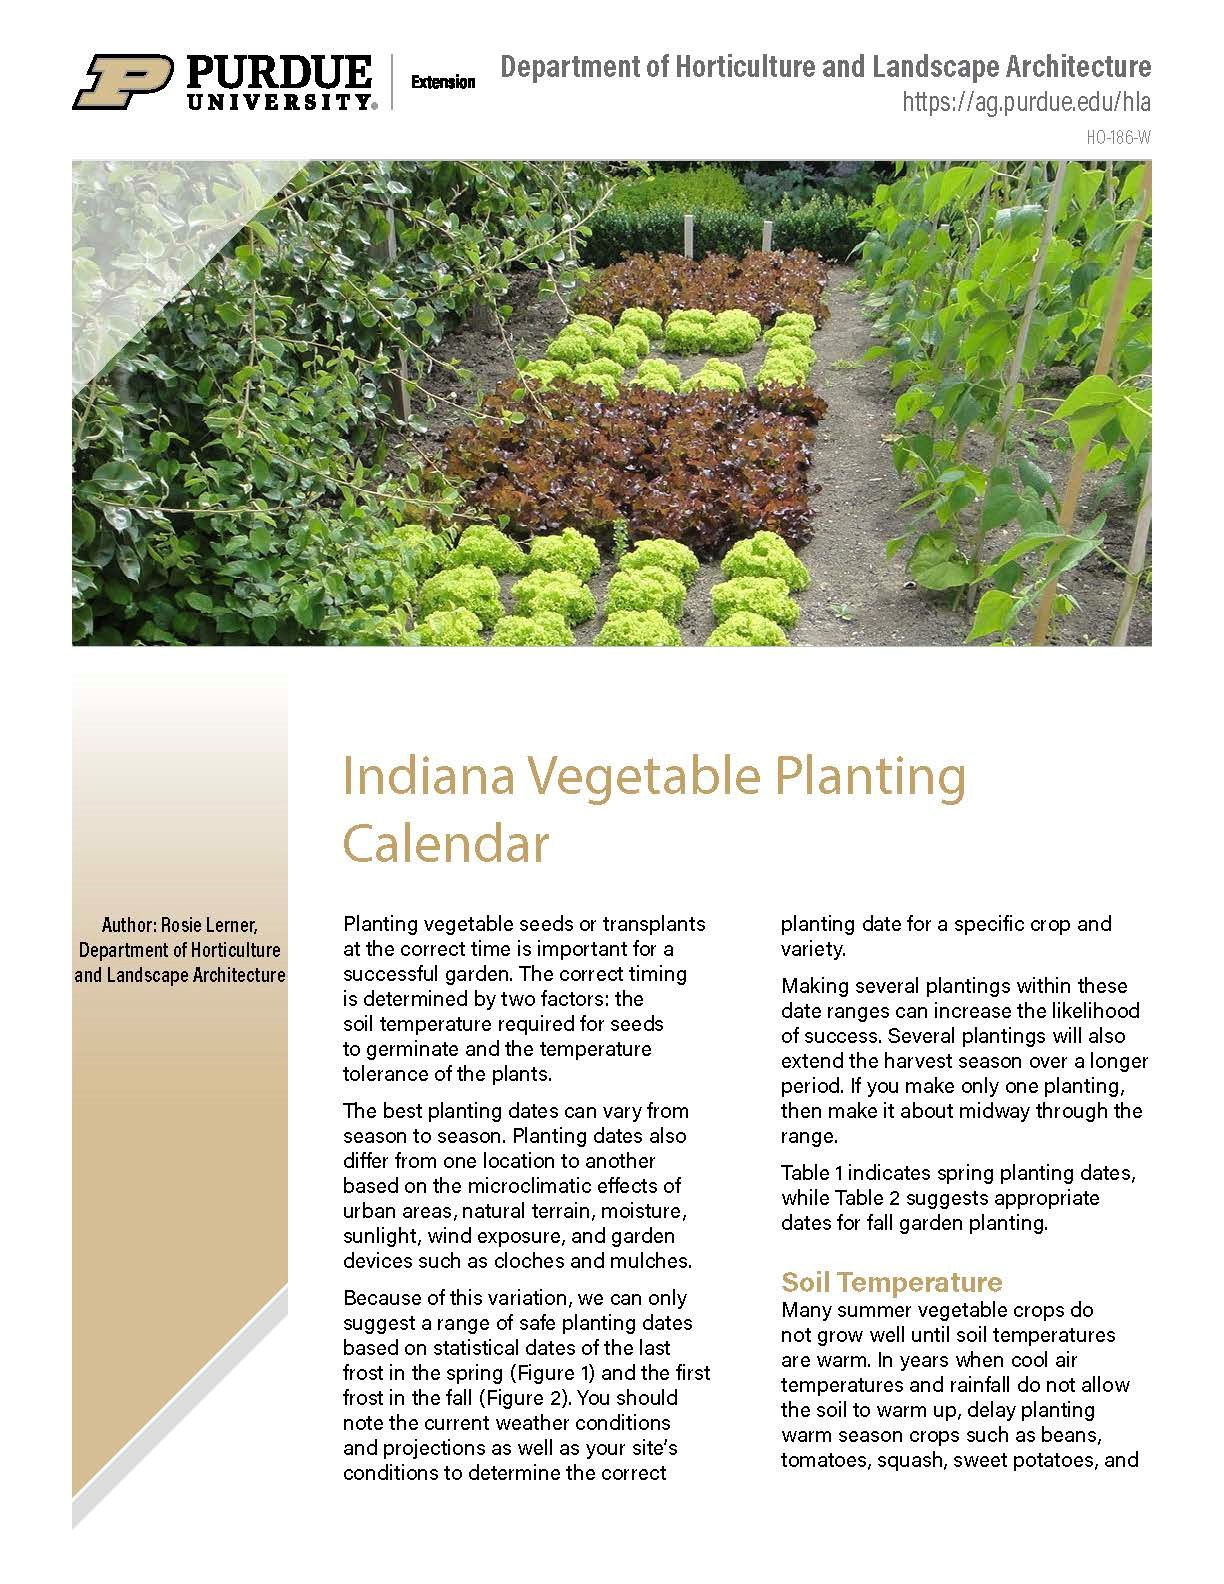 Indiana Vegetable Planting Calendar